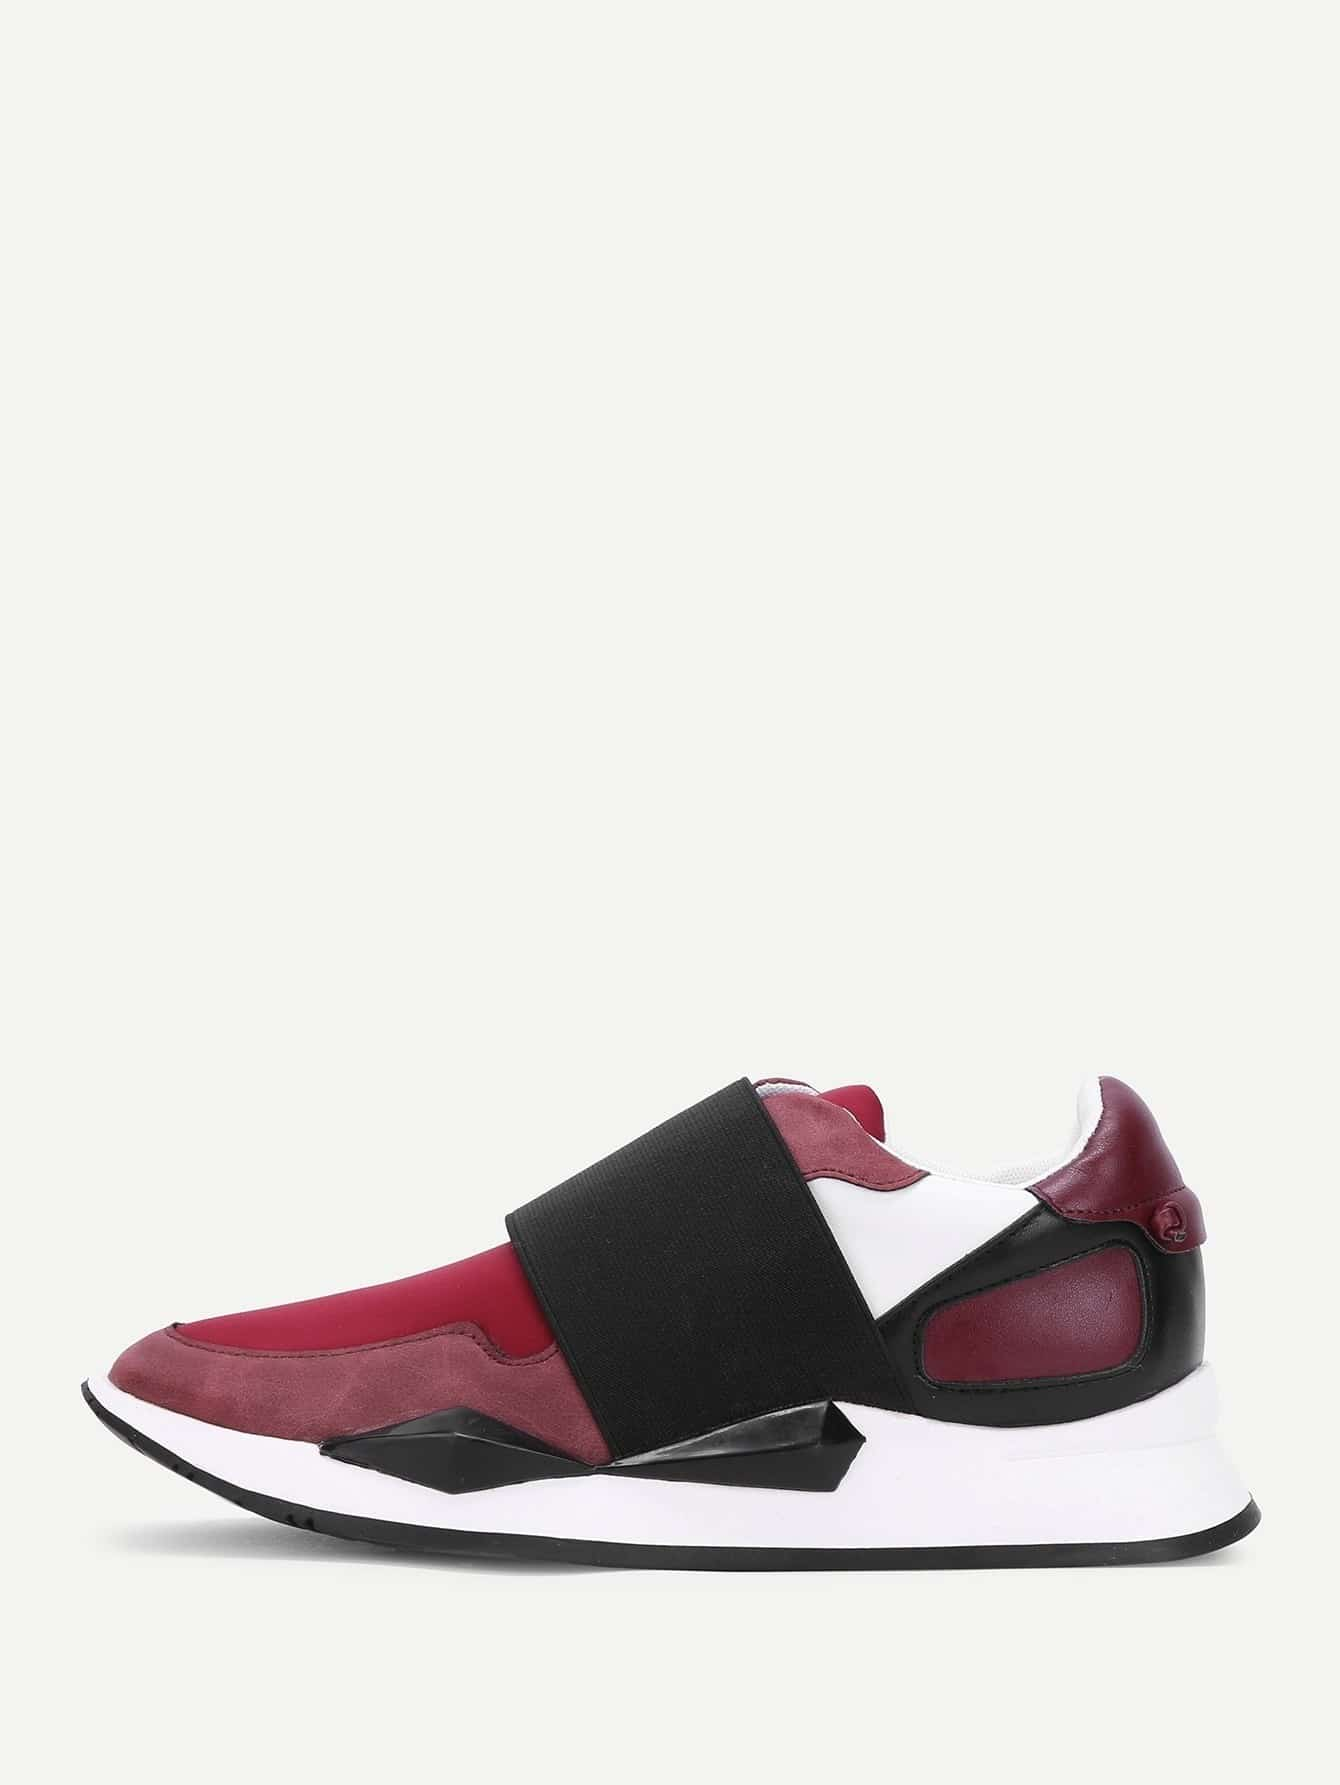 Two Tone Slip On Sneakers drop crotch loose two tone pants